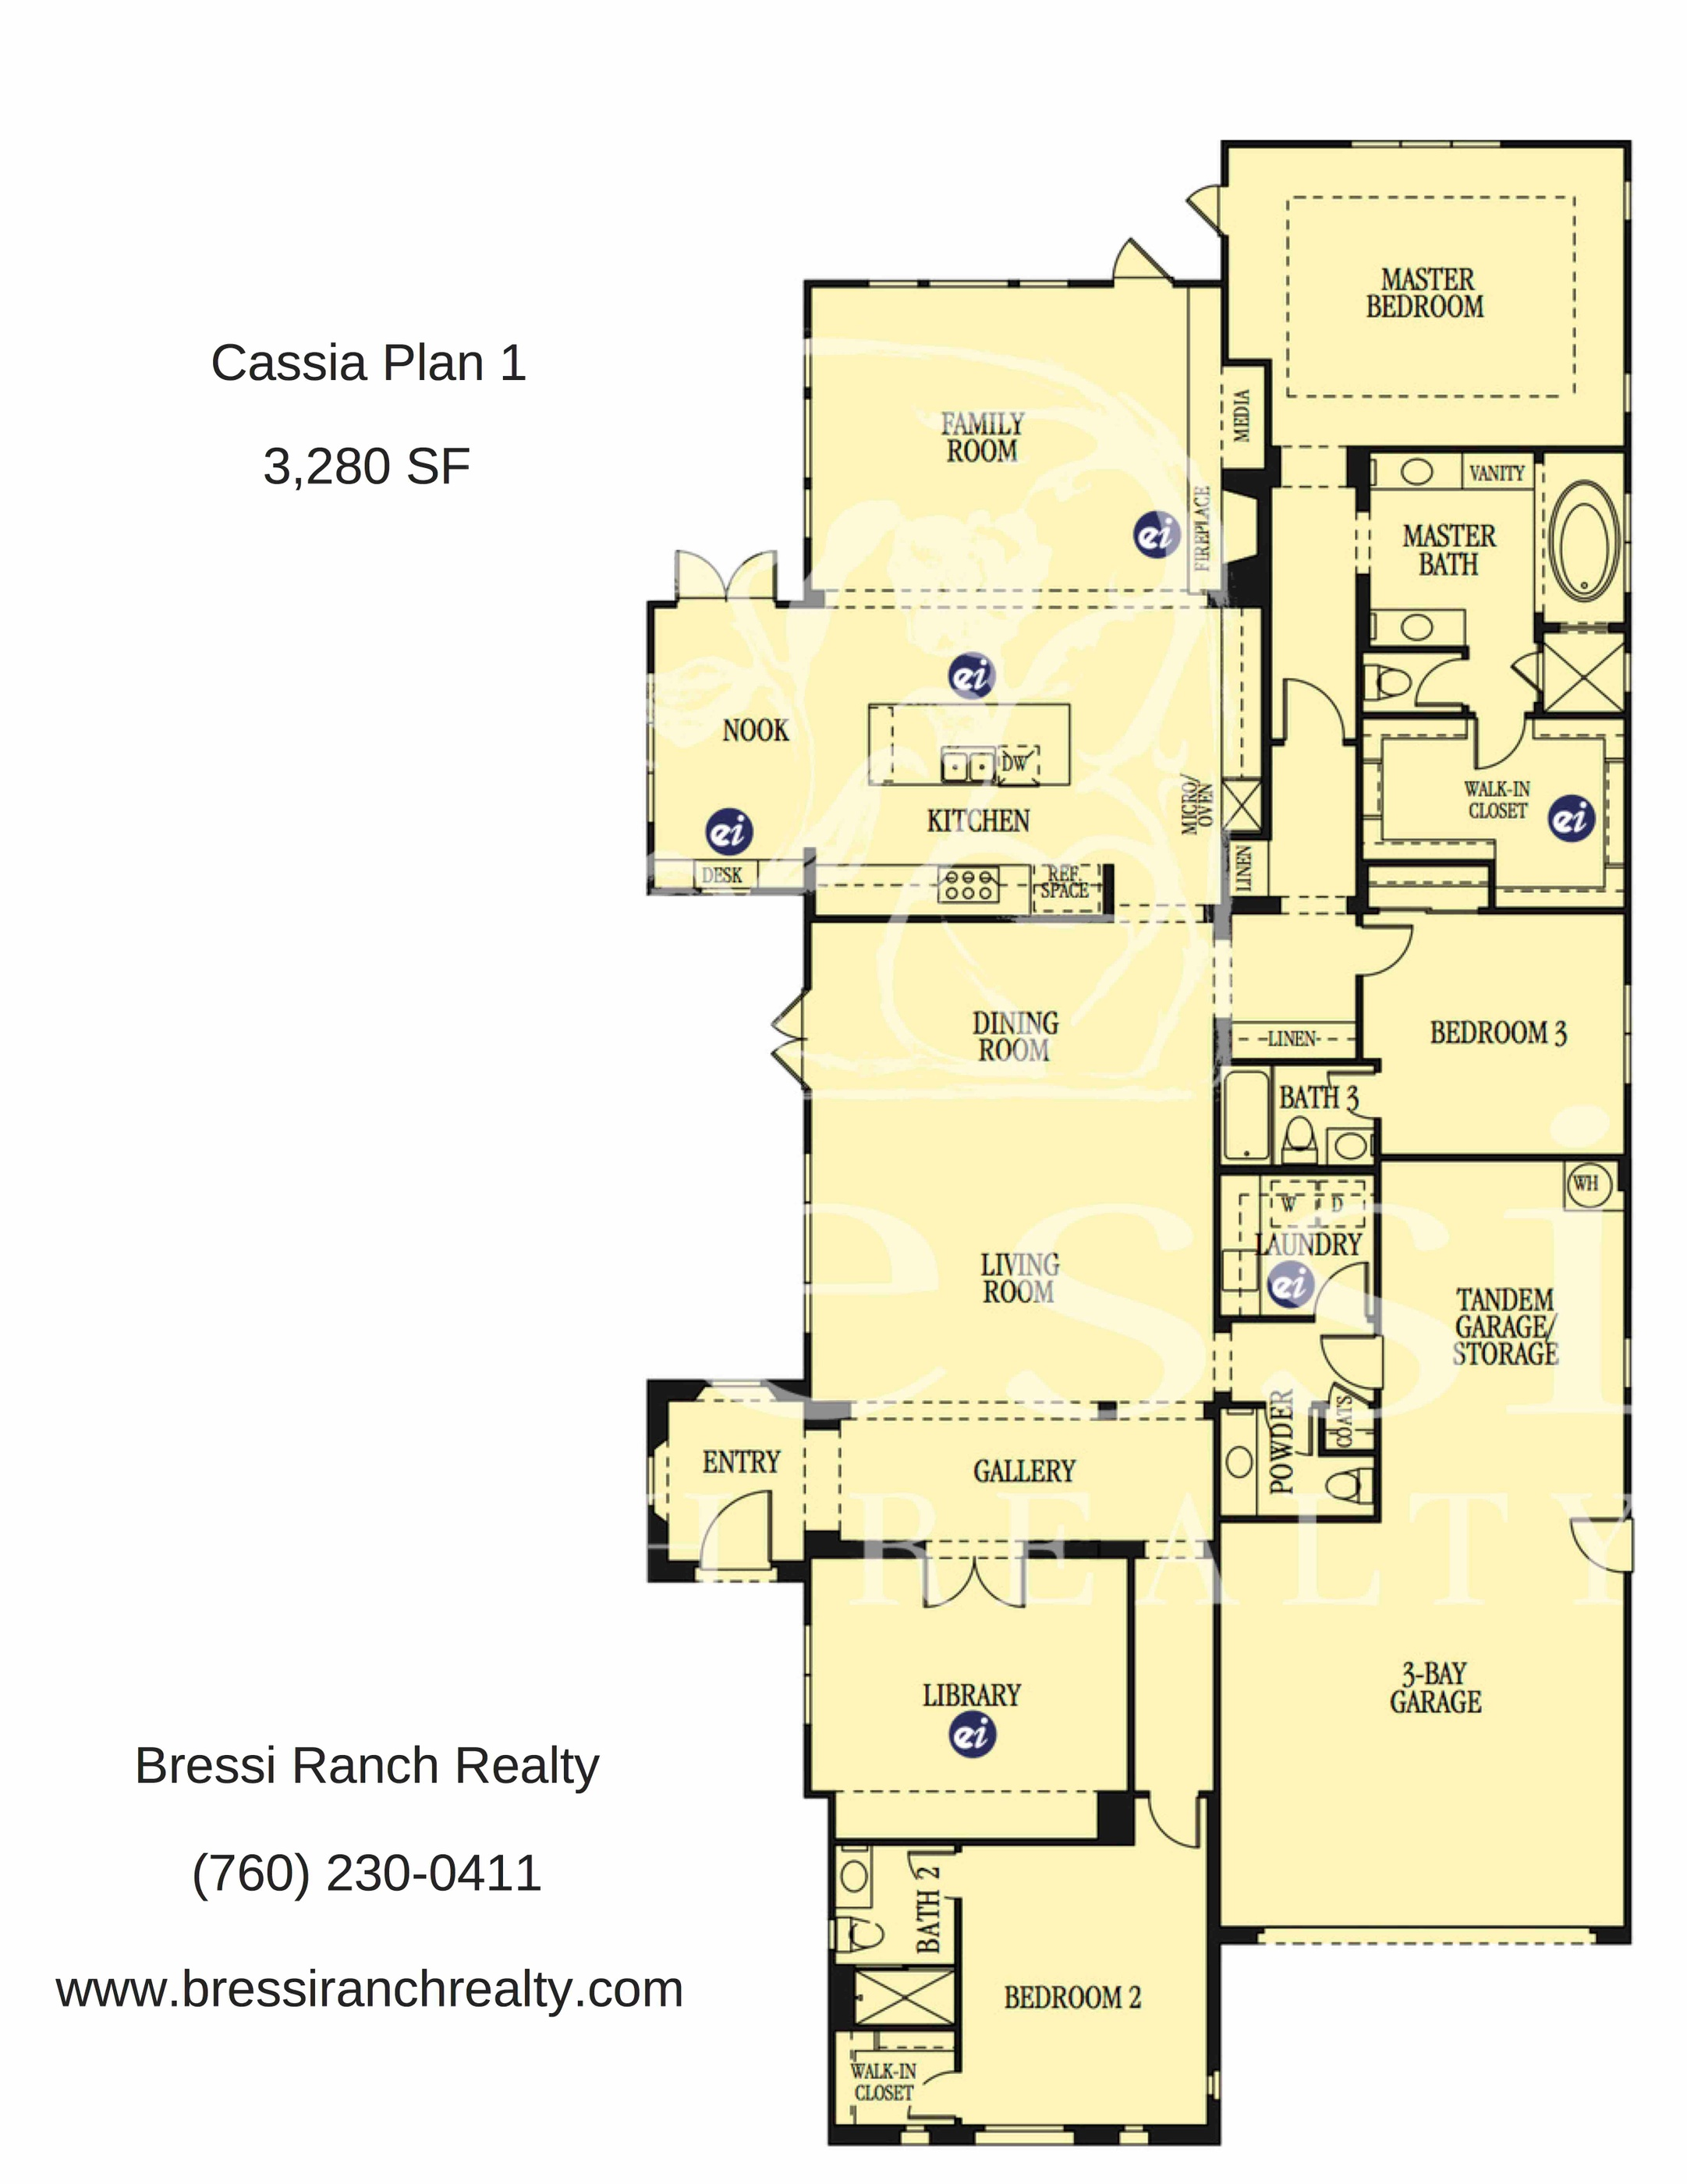 Cassia Plan 1 Floor Plan